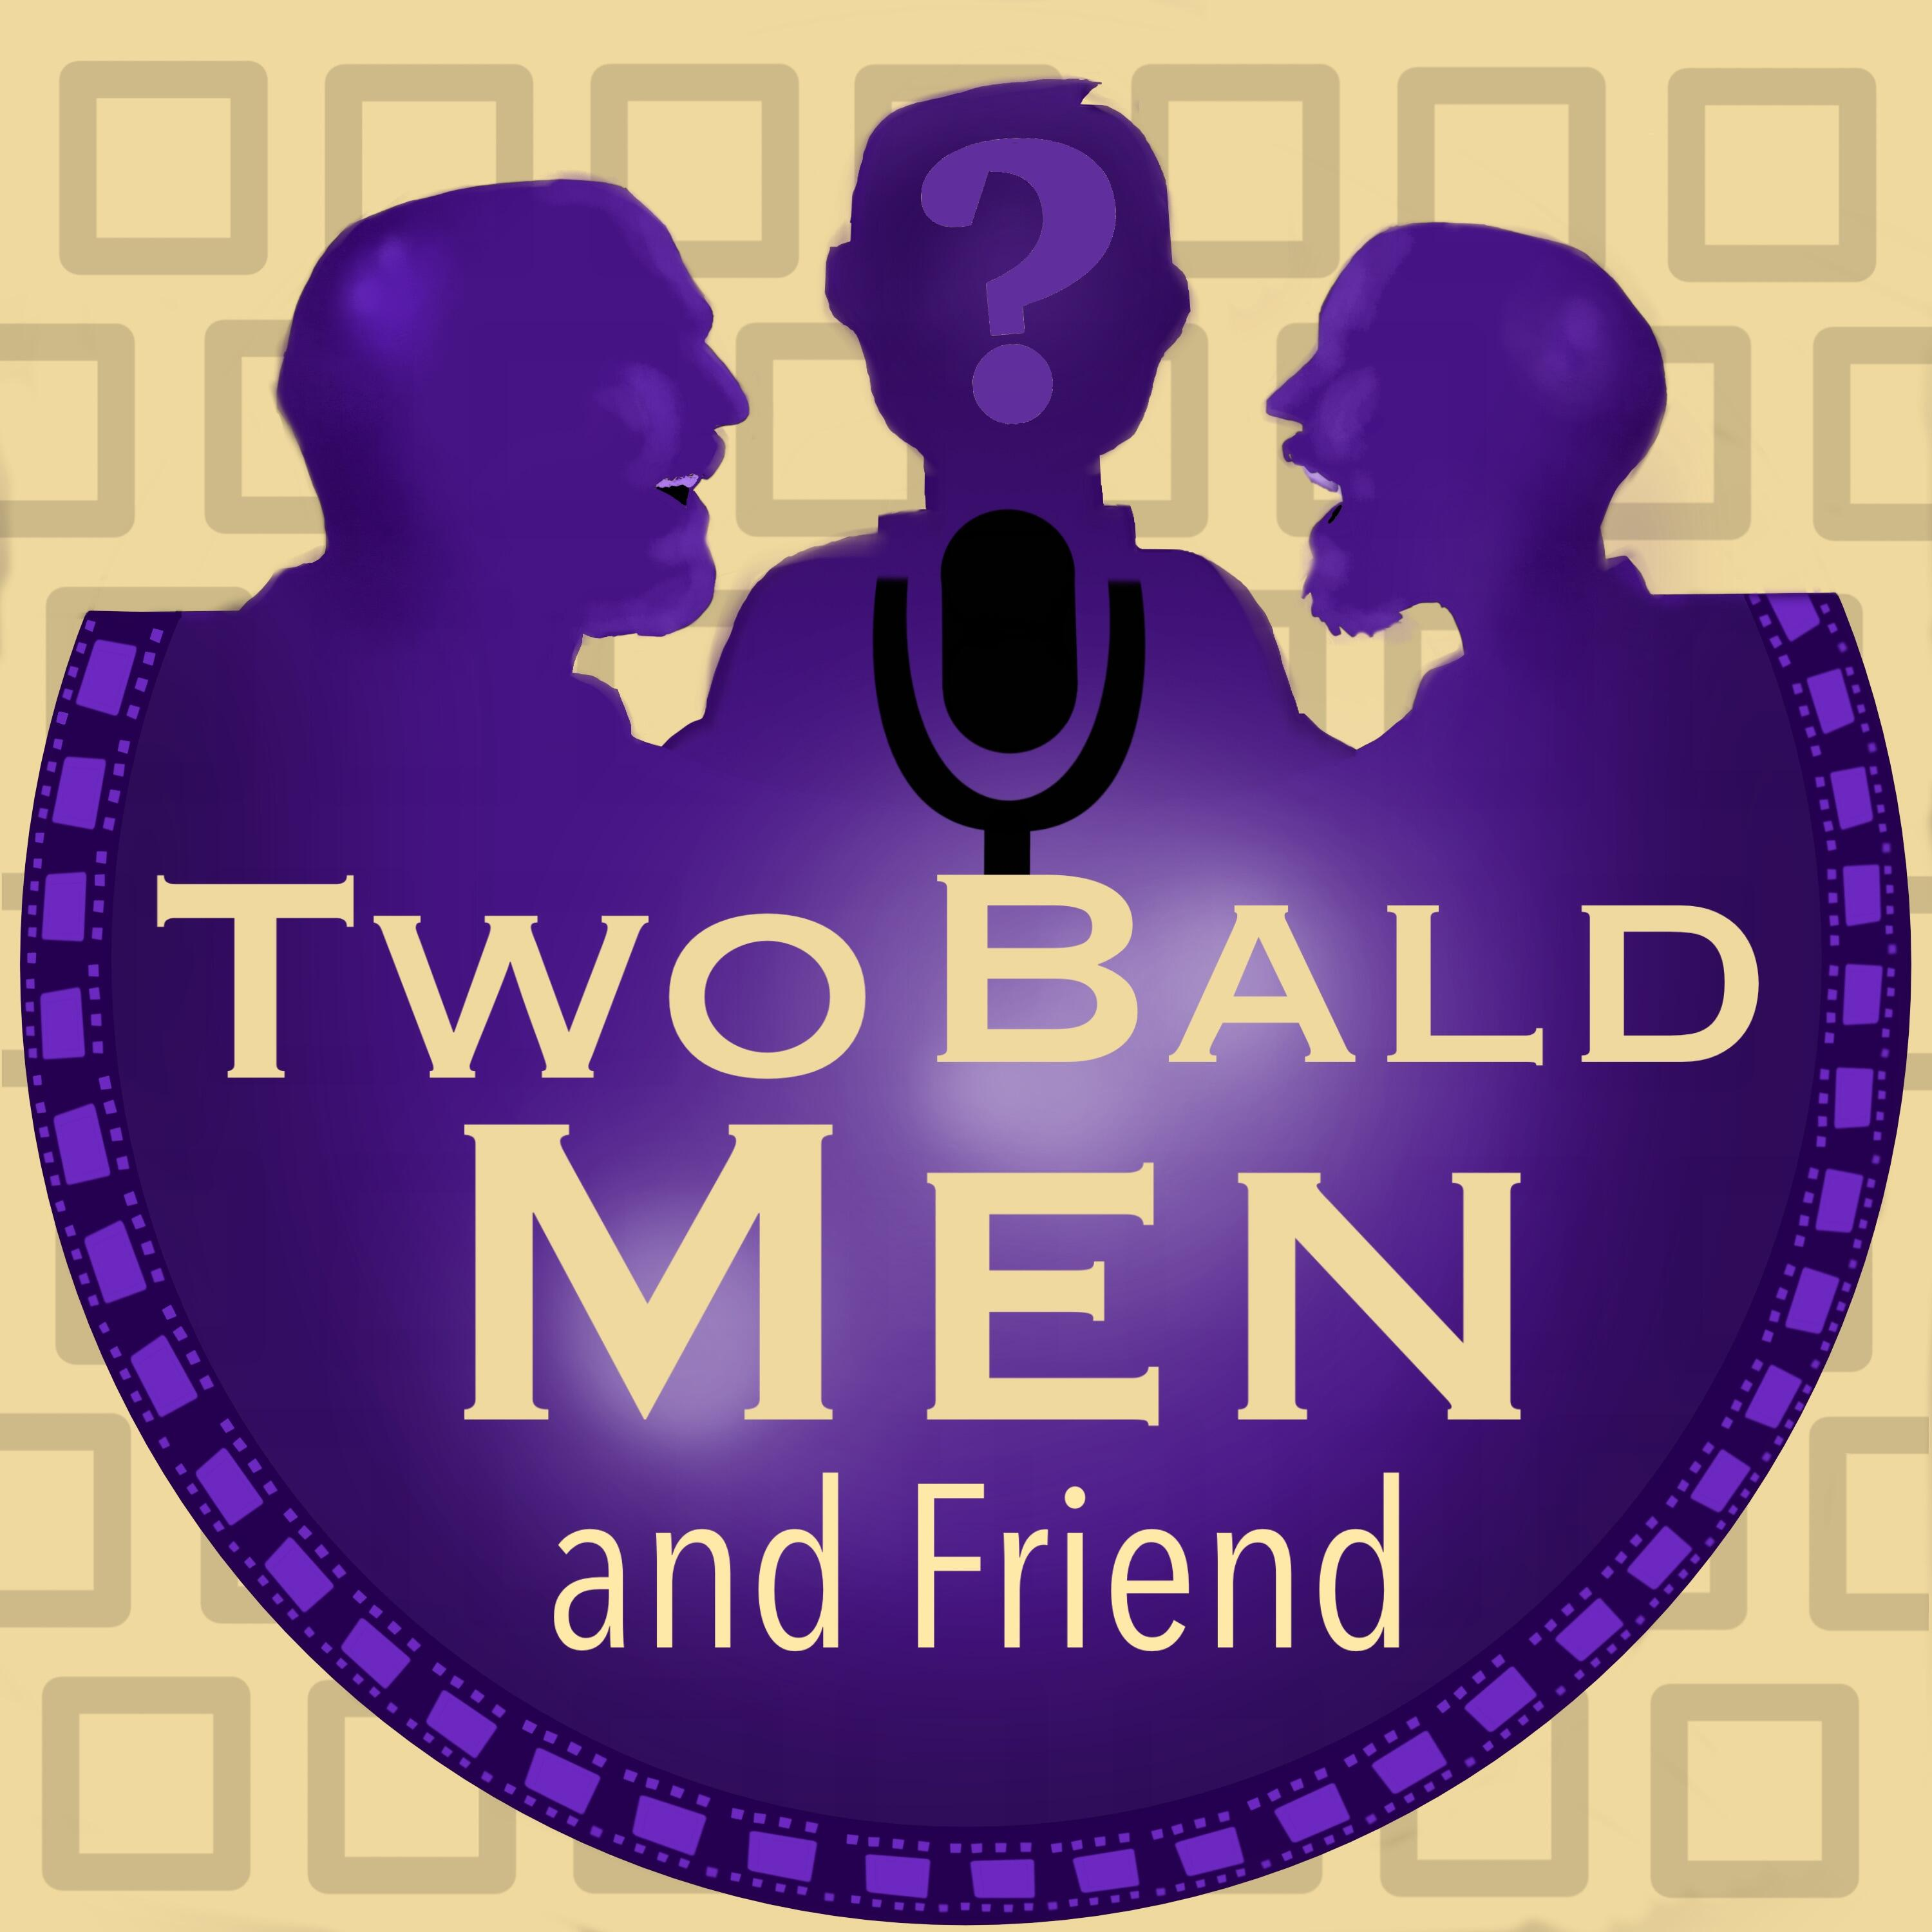 Two Bald Men, and Friend